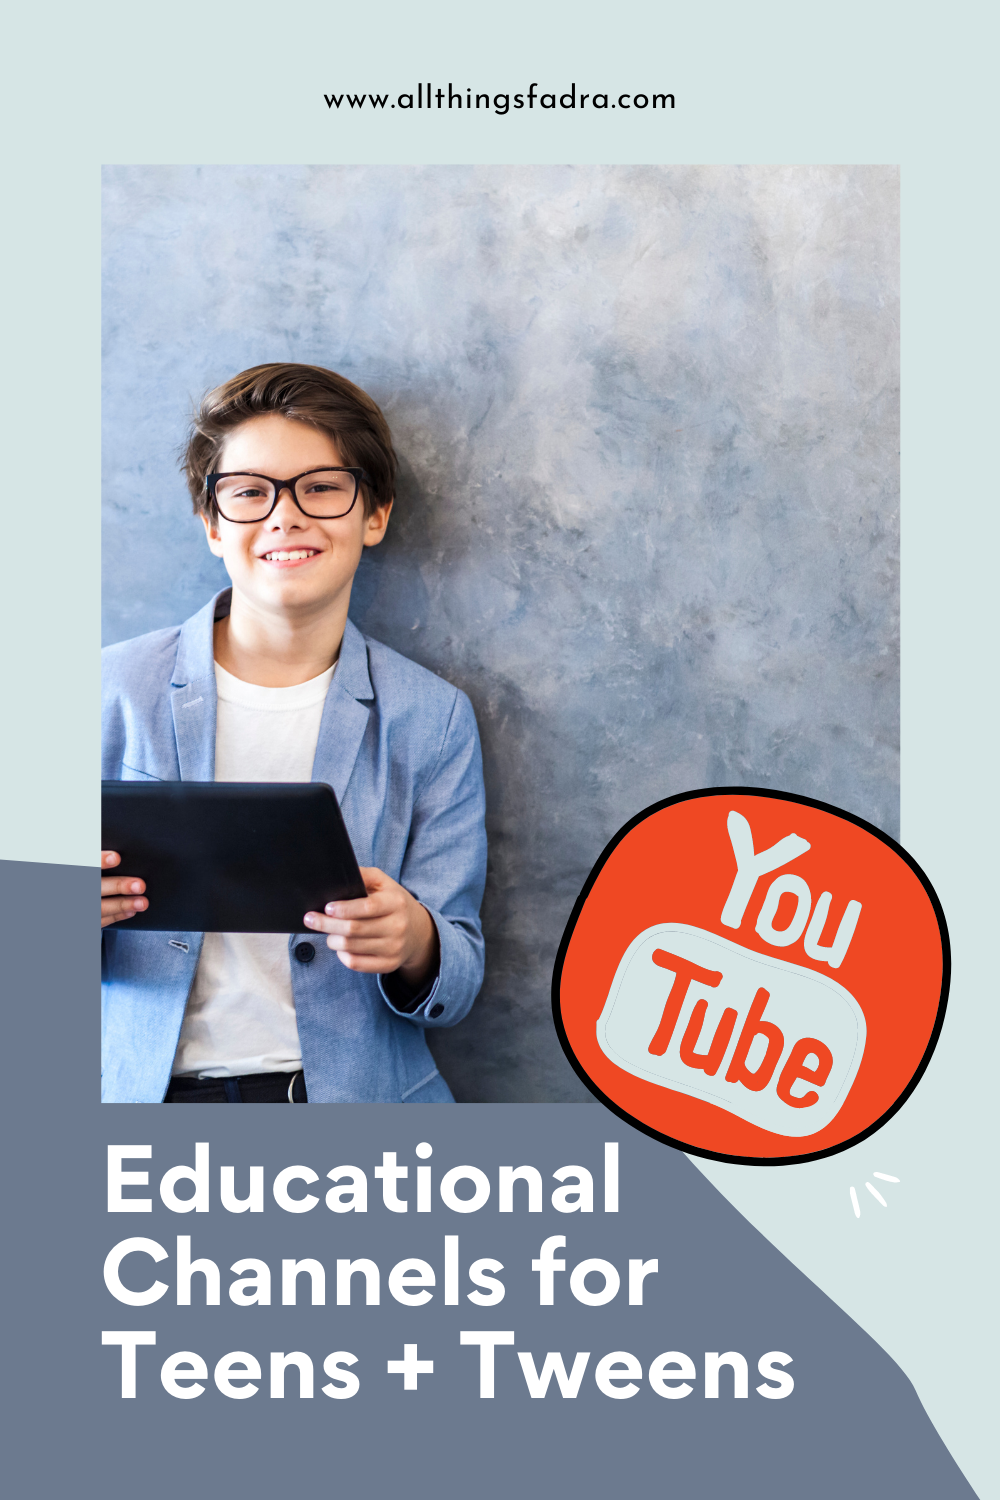 Educational YouTube channels for Teens and Tweens